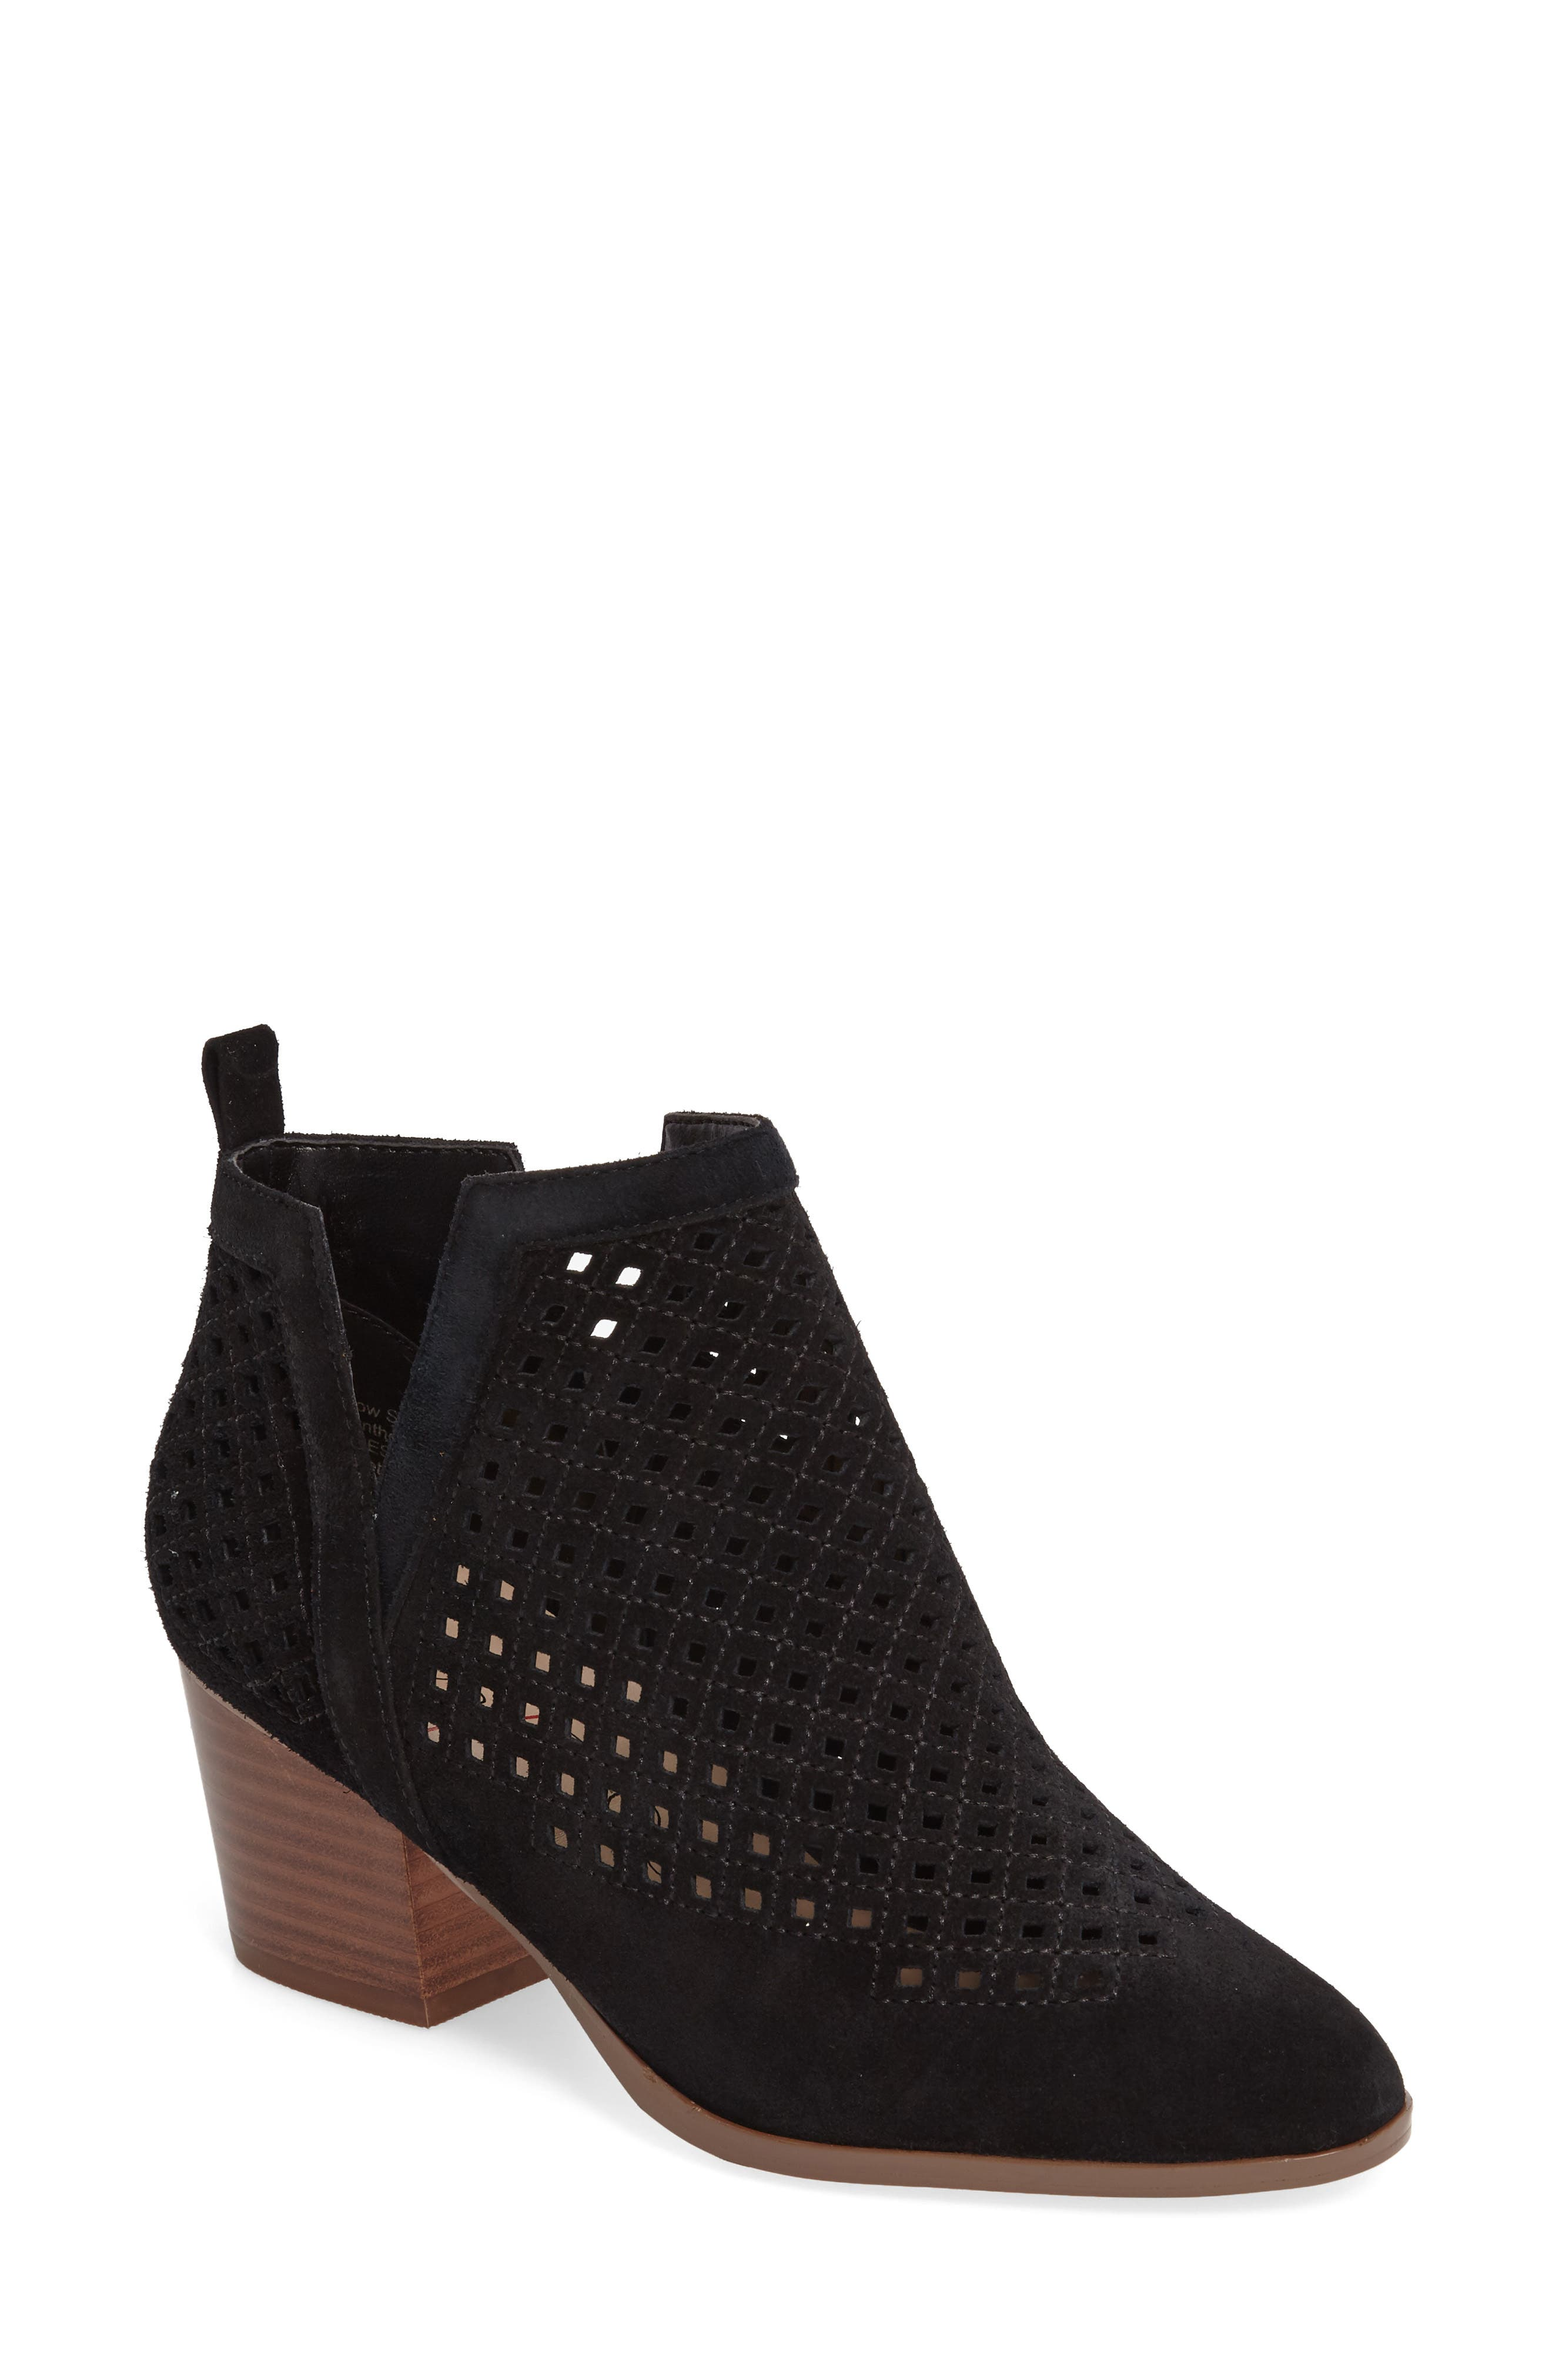 Barcelona Bootie,                         Main,                         color, 001